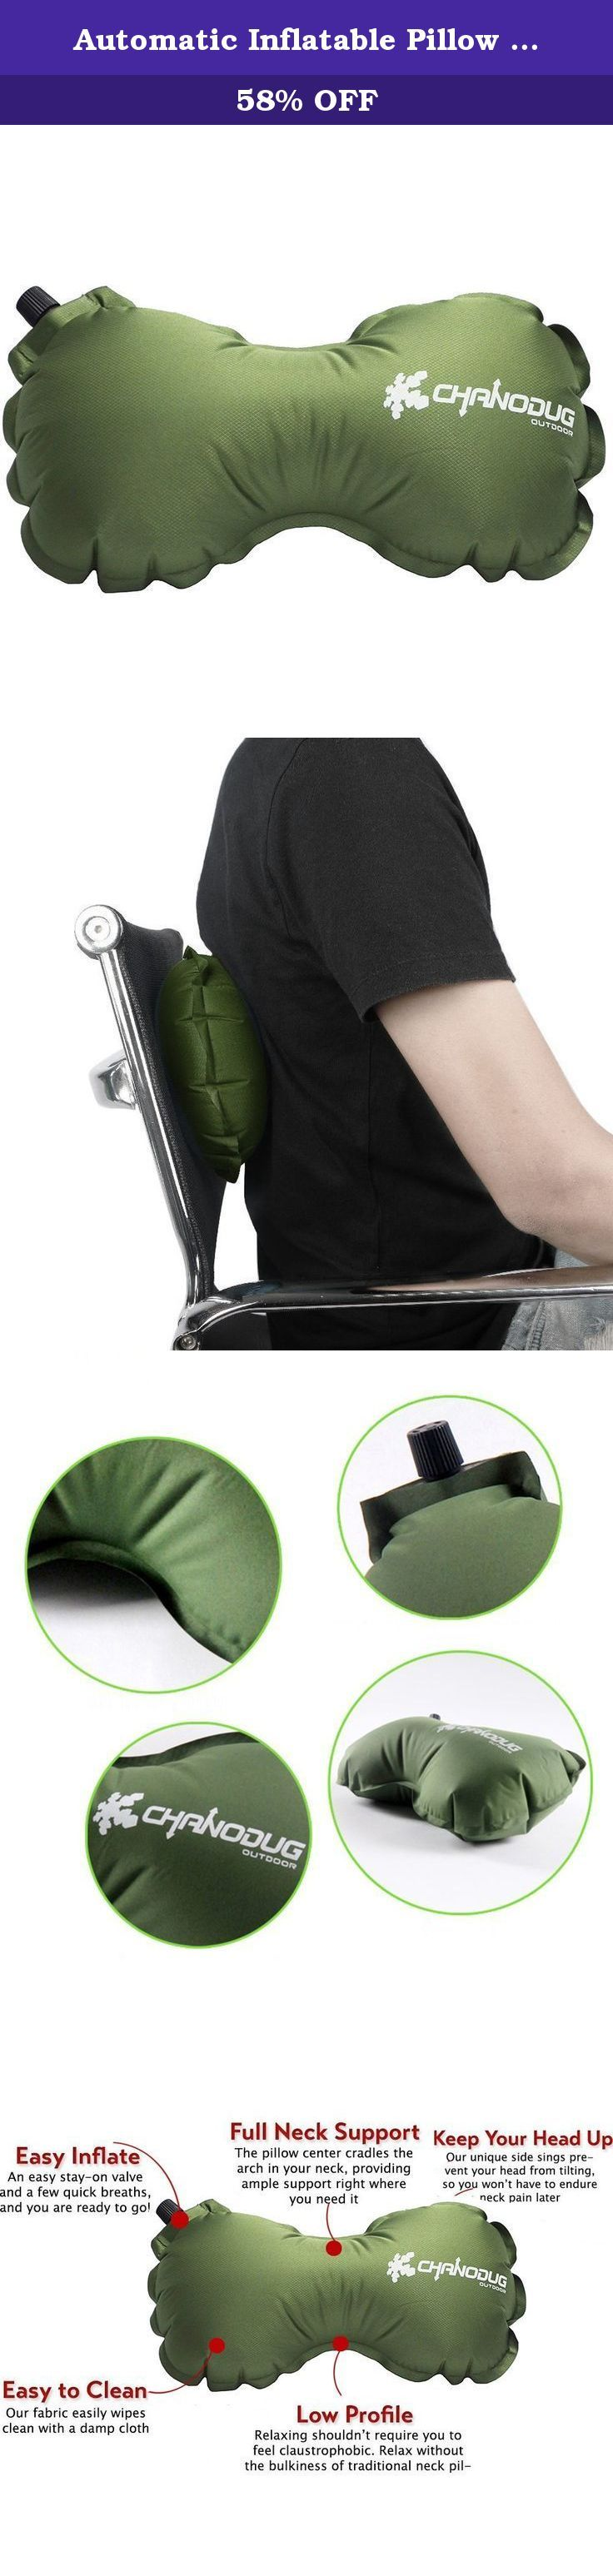 Automatic Inflatable Pillow for or Car, Airplane or Lumbar Support,3colors, Neck and Back Pillow NOTE: some of the products are green in front and black in back.(Green). The self-inflating neck and back pillow is ideal for long-distance travel, with a unique bow-tie shape that's comfortable for your neck and back. Specification : Color: Green/ Grey /Light green External material: 75D polyester pongee. Internal material: High resilient sponge. Gas nozzle material: Plastic. Full Inflated...